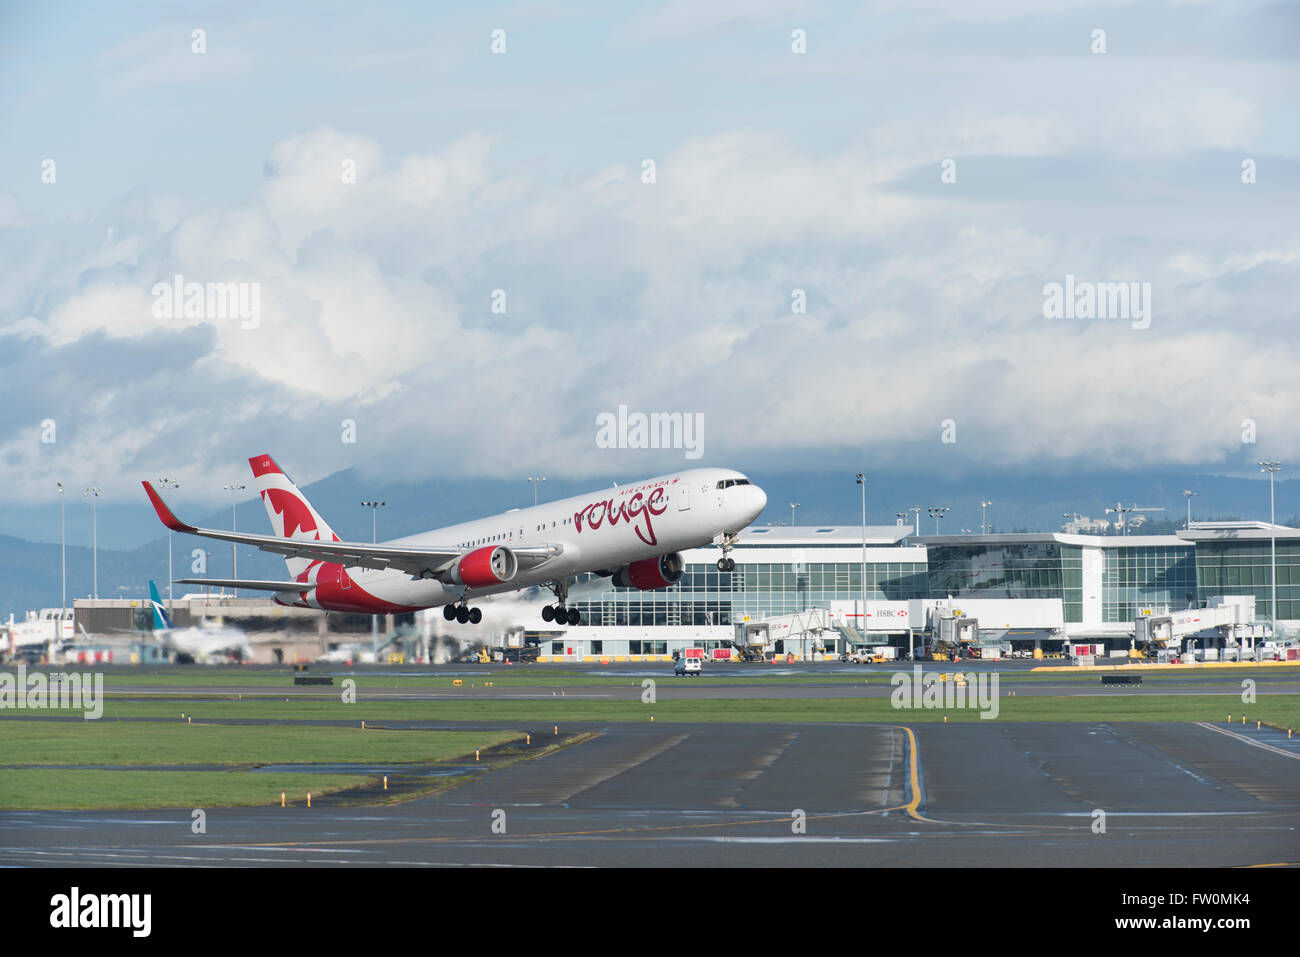 Air Canada Rouge Boeing 767-300 in air after take off from YVR Vancouver  International Airport Stock Photo